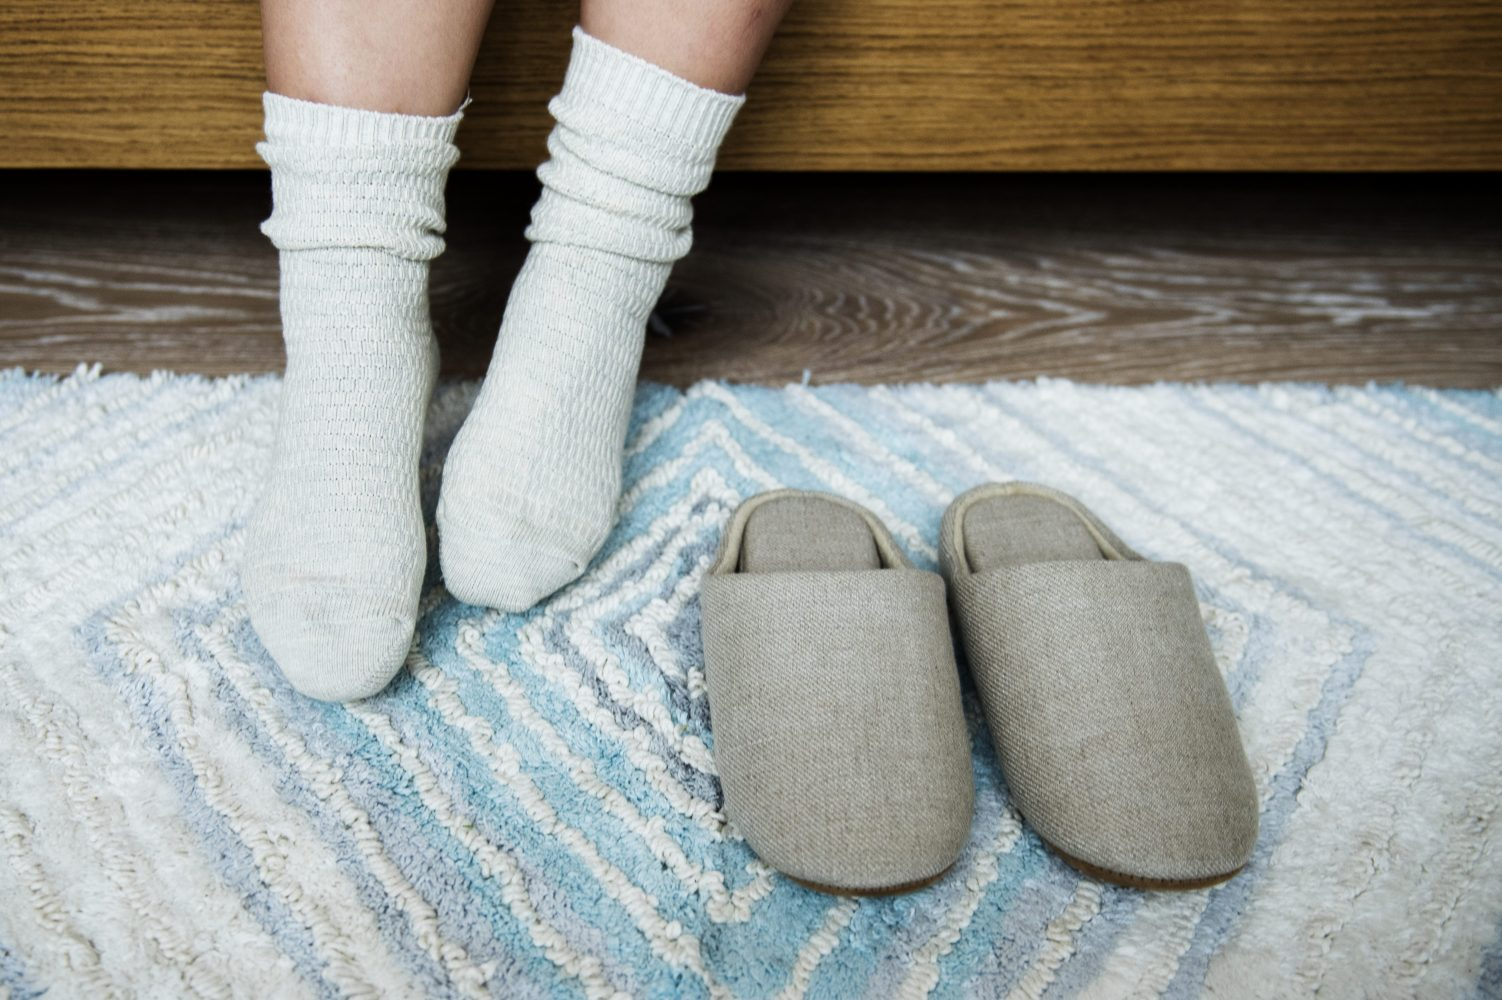 Potatoes in Socks: Does this At-Home Cold Remedy Really Work?